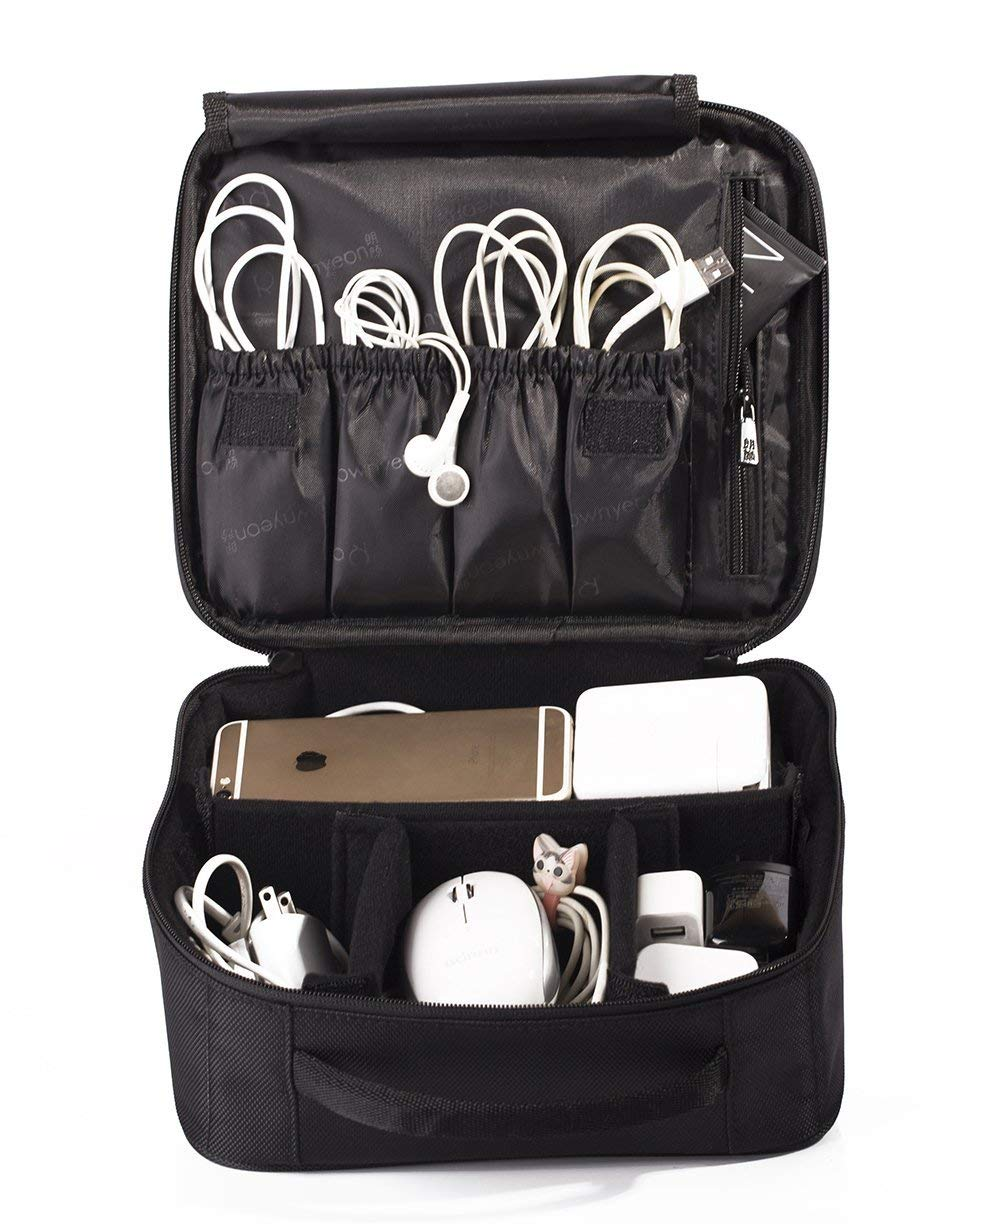 ROWNYEON Portable Travel Makeup Bag Makeup Case Mini Makeup Train Case 9.